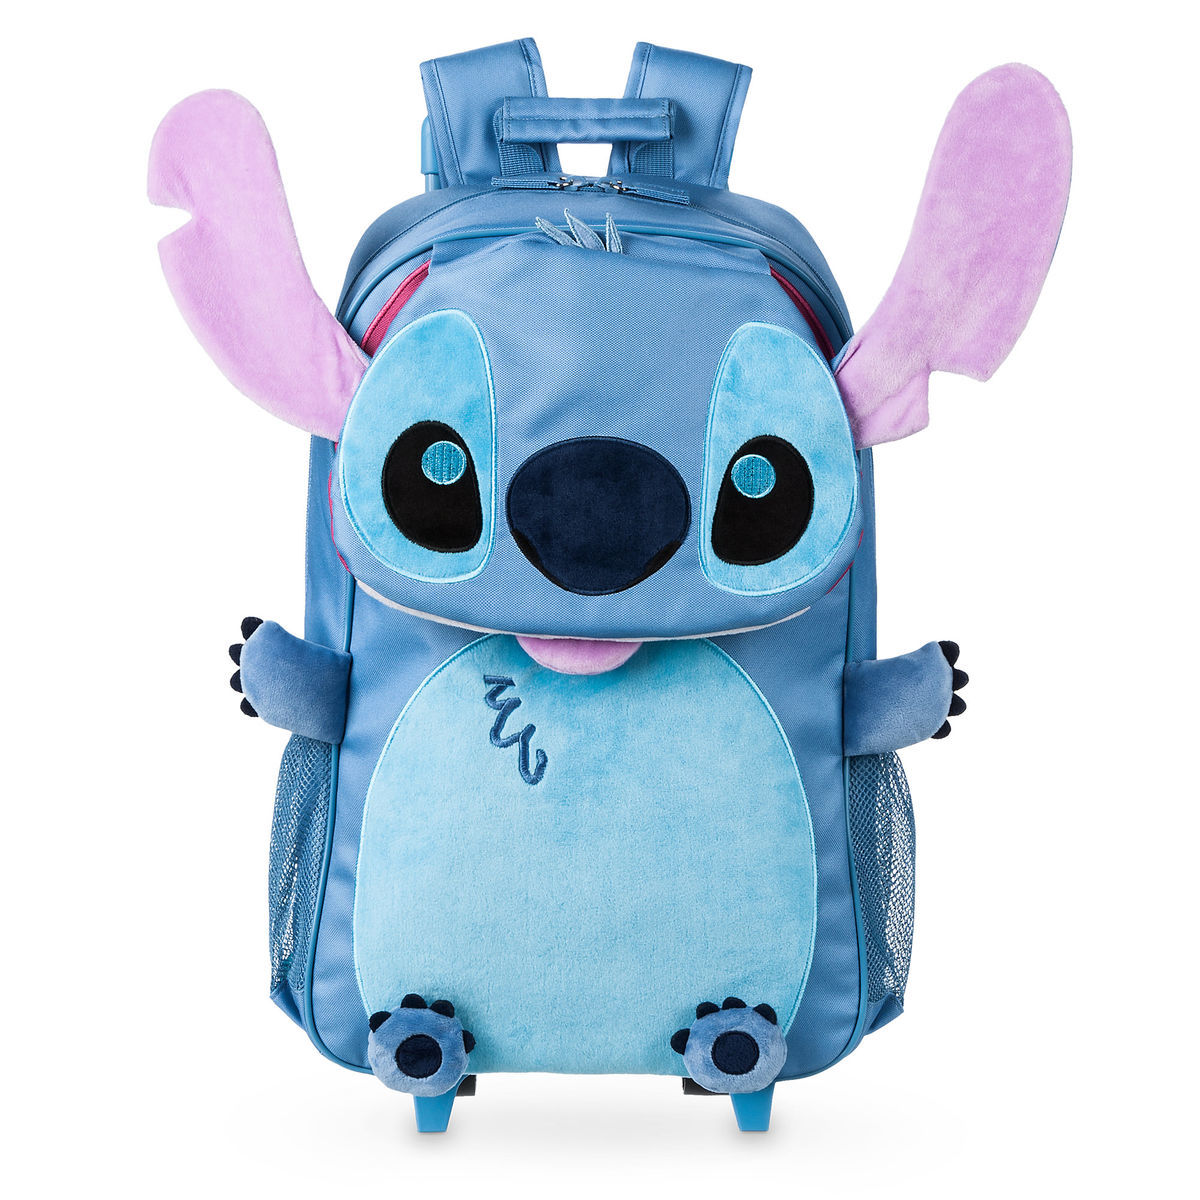 6a8af8ea1513 Product Image of Stitch Rolling Backpack - Personalizable   1